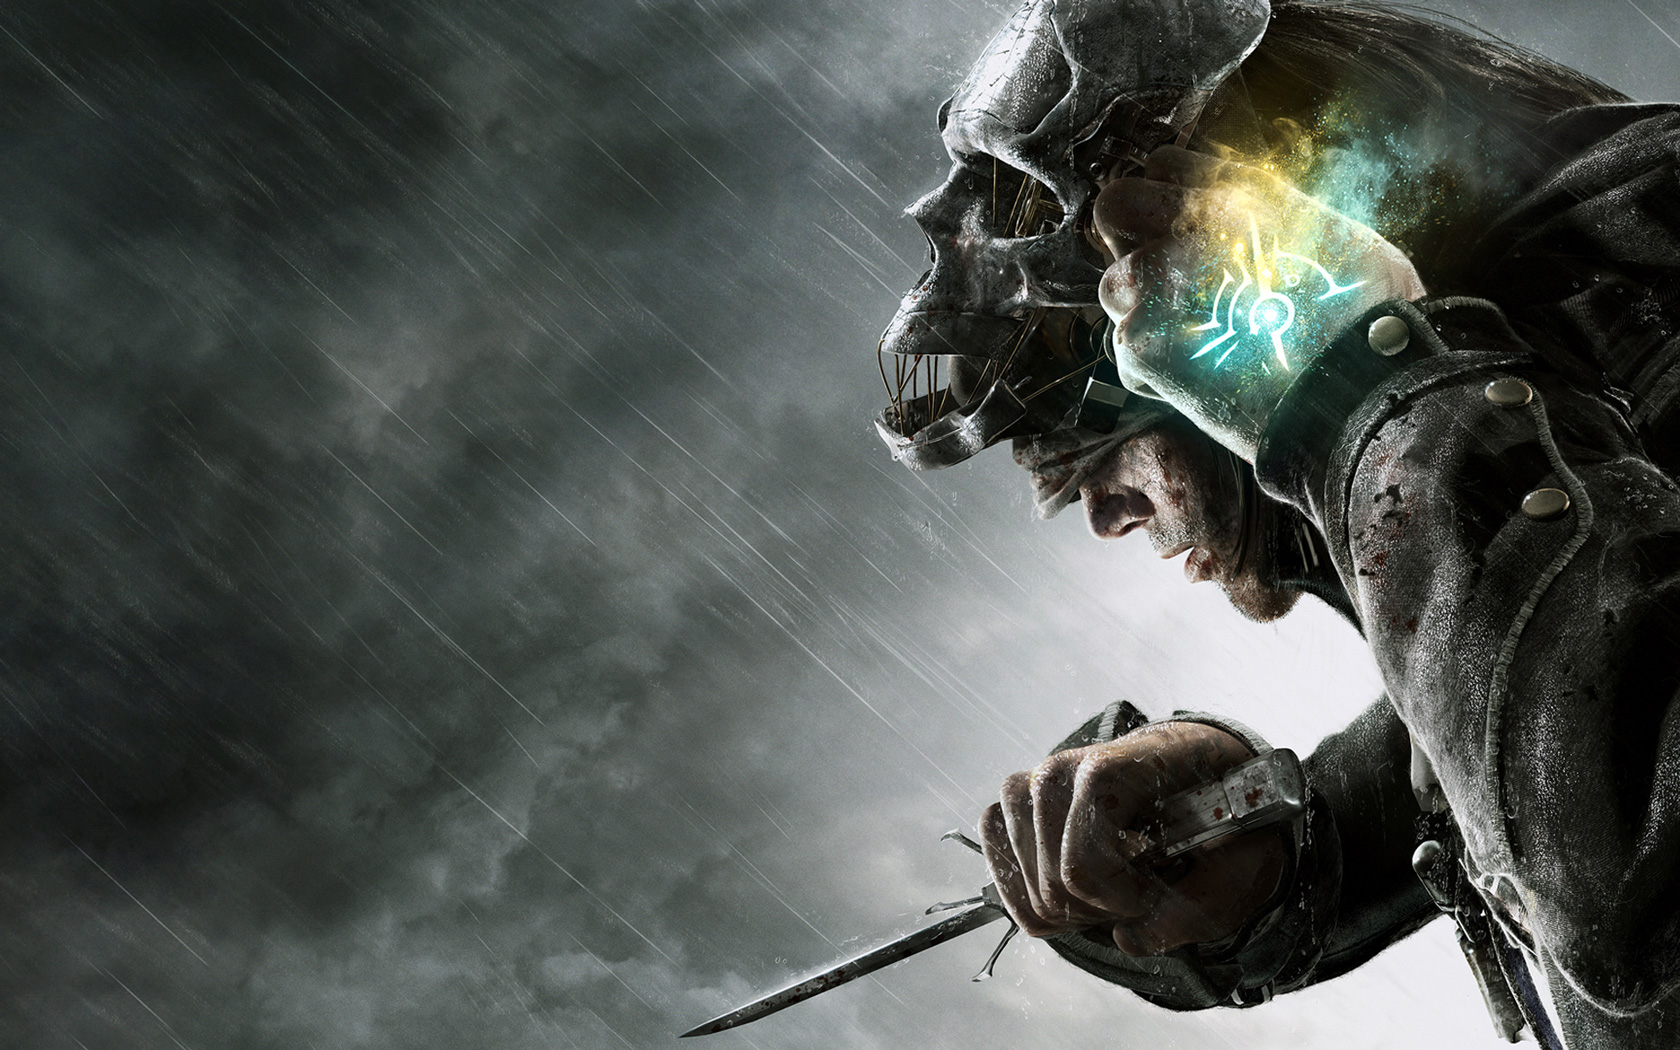 Free Dishonored Wallpaper in 1680x1050